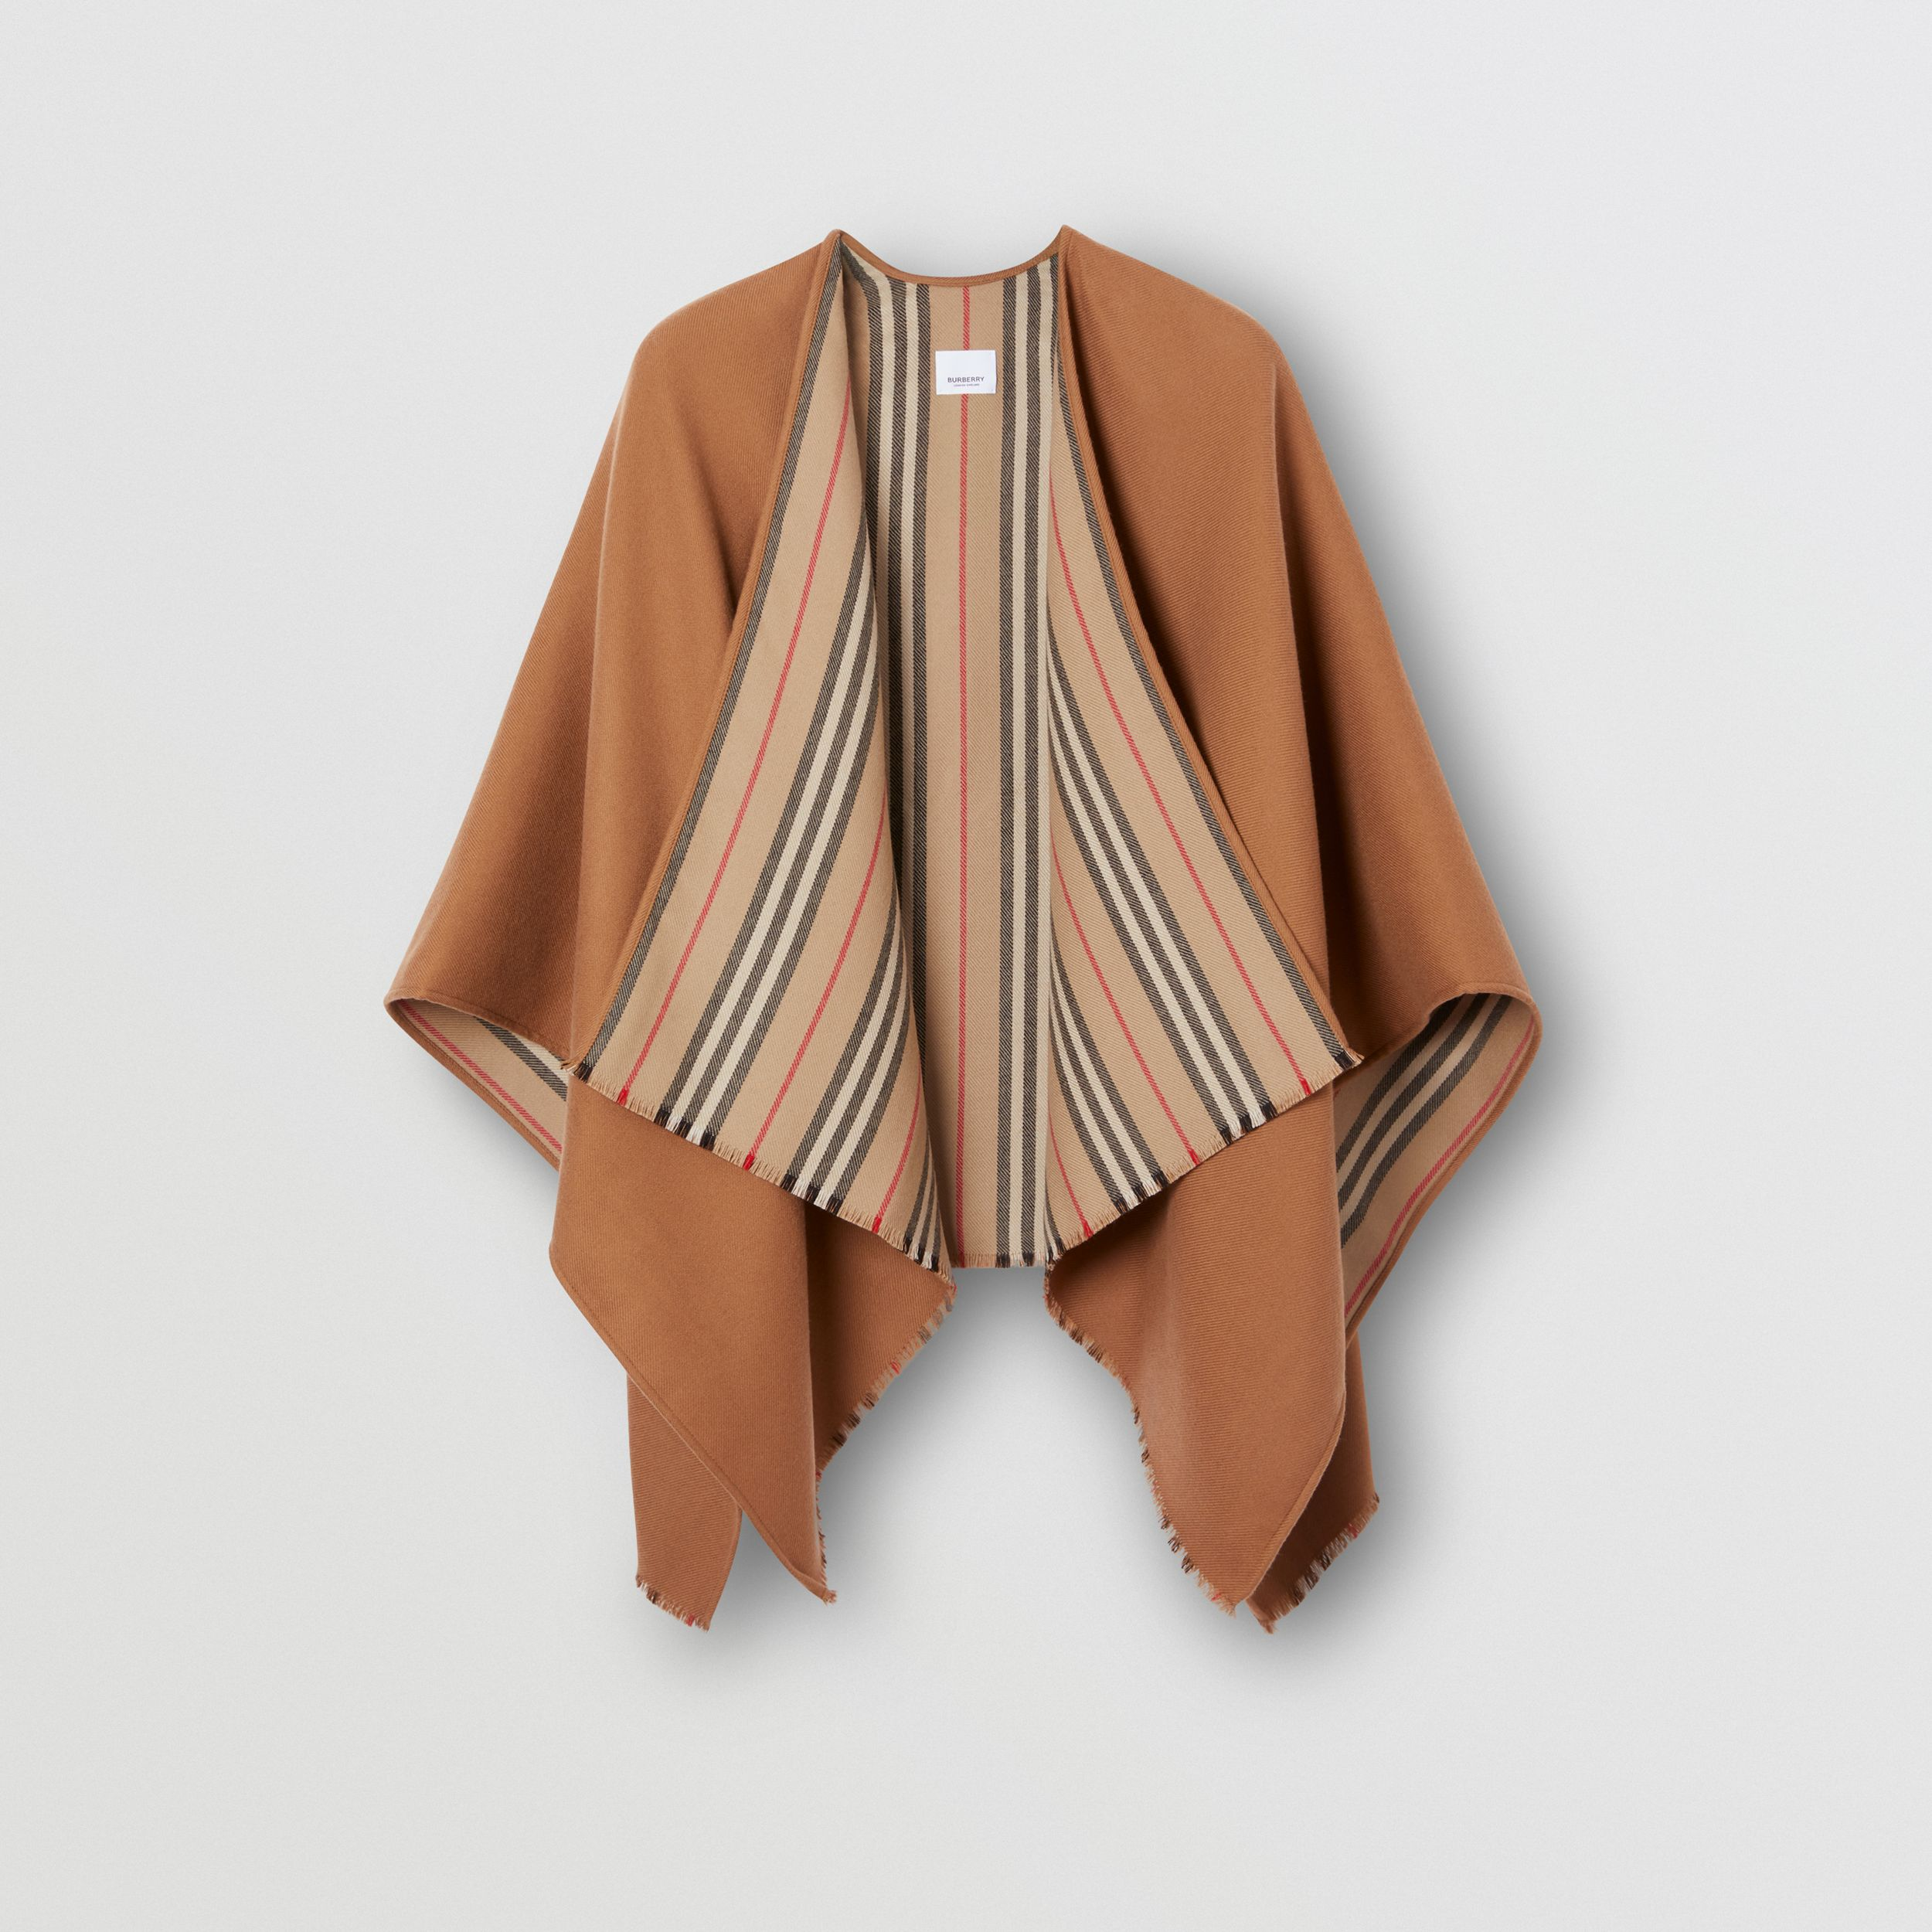 Icon Stripe Detail Wool Cape in Flaxseed - Women | Burberry - 4